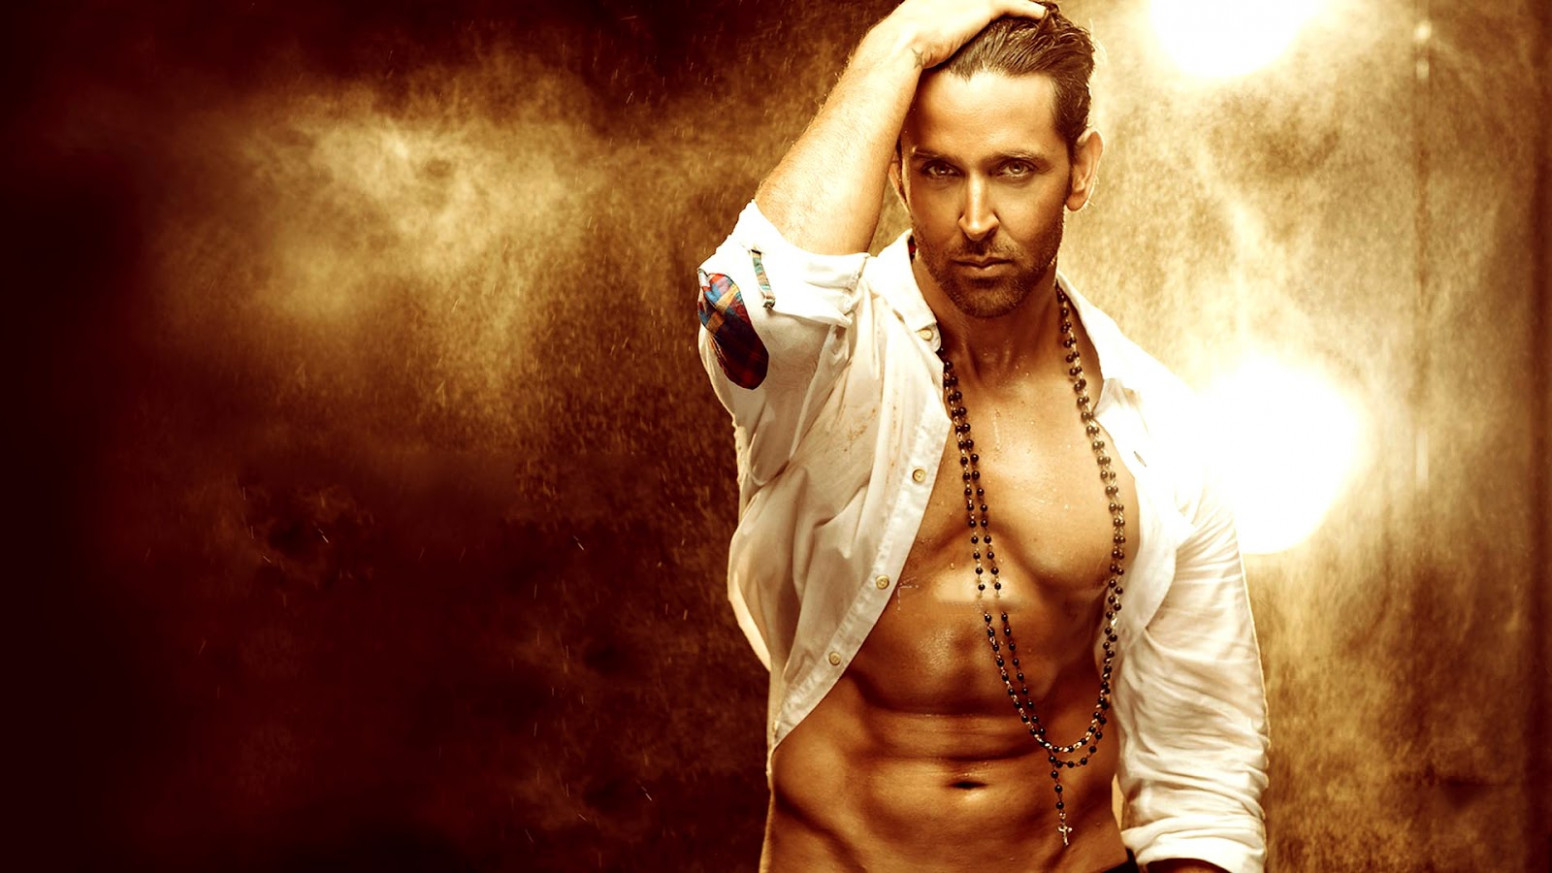 Hrithik Roshan Wallpapers HD Download Free 1080p ...